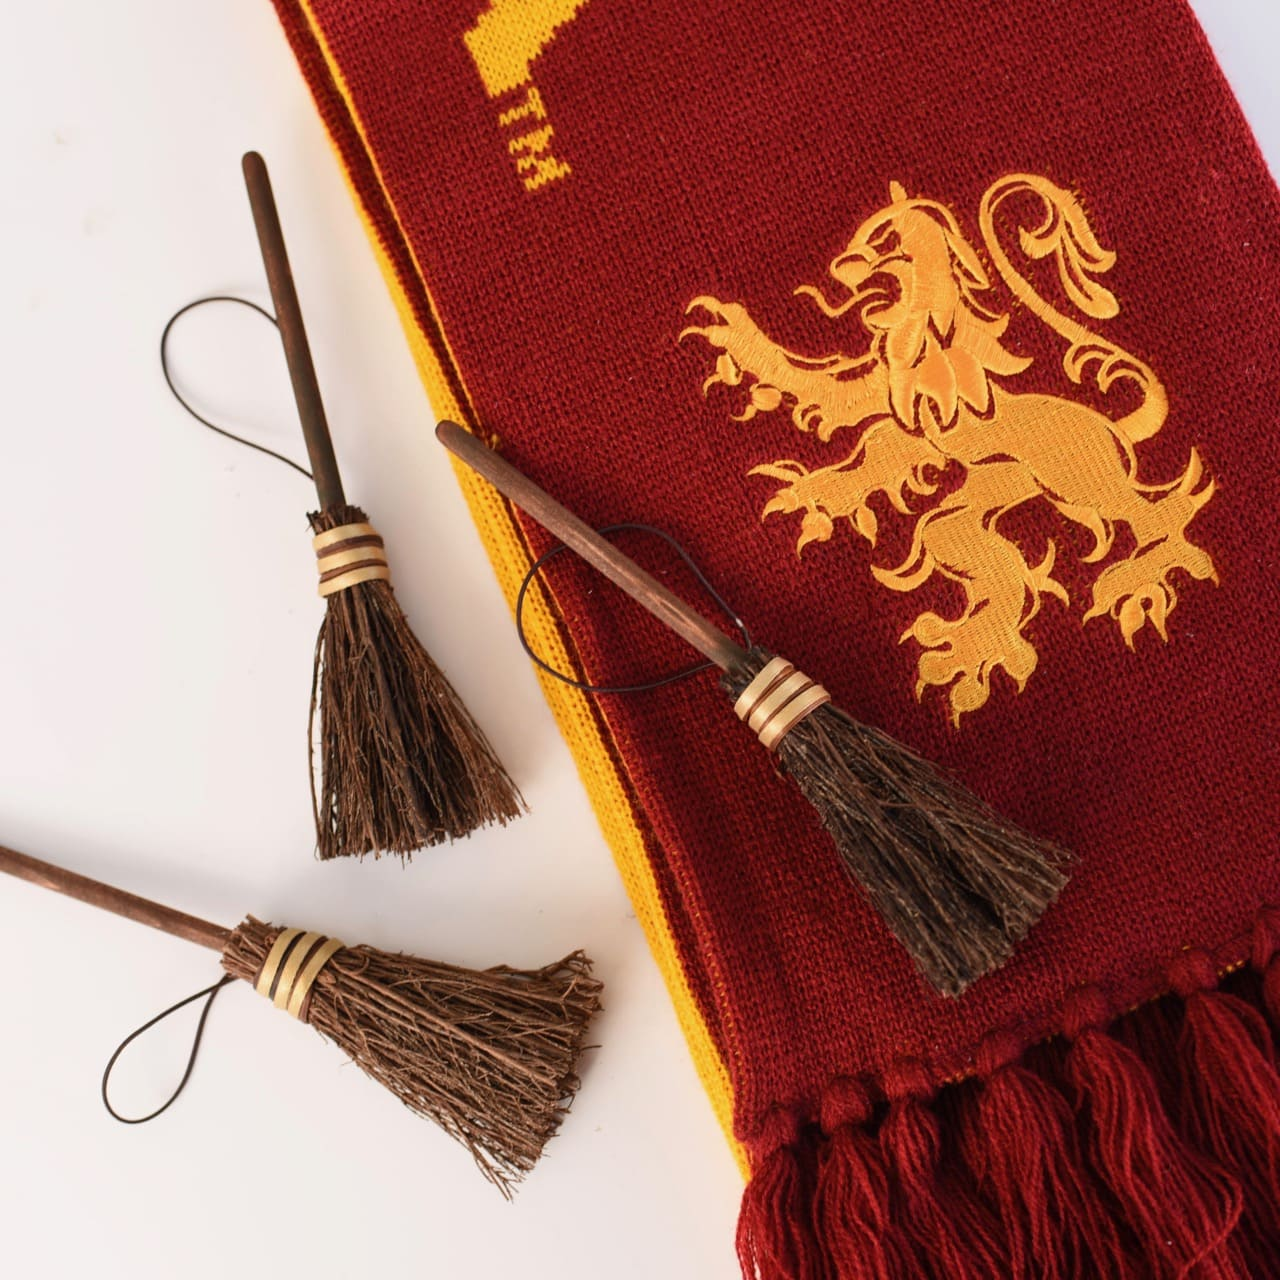 How to Make Adorable DIY Harry Potter Broom Ornaments